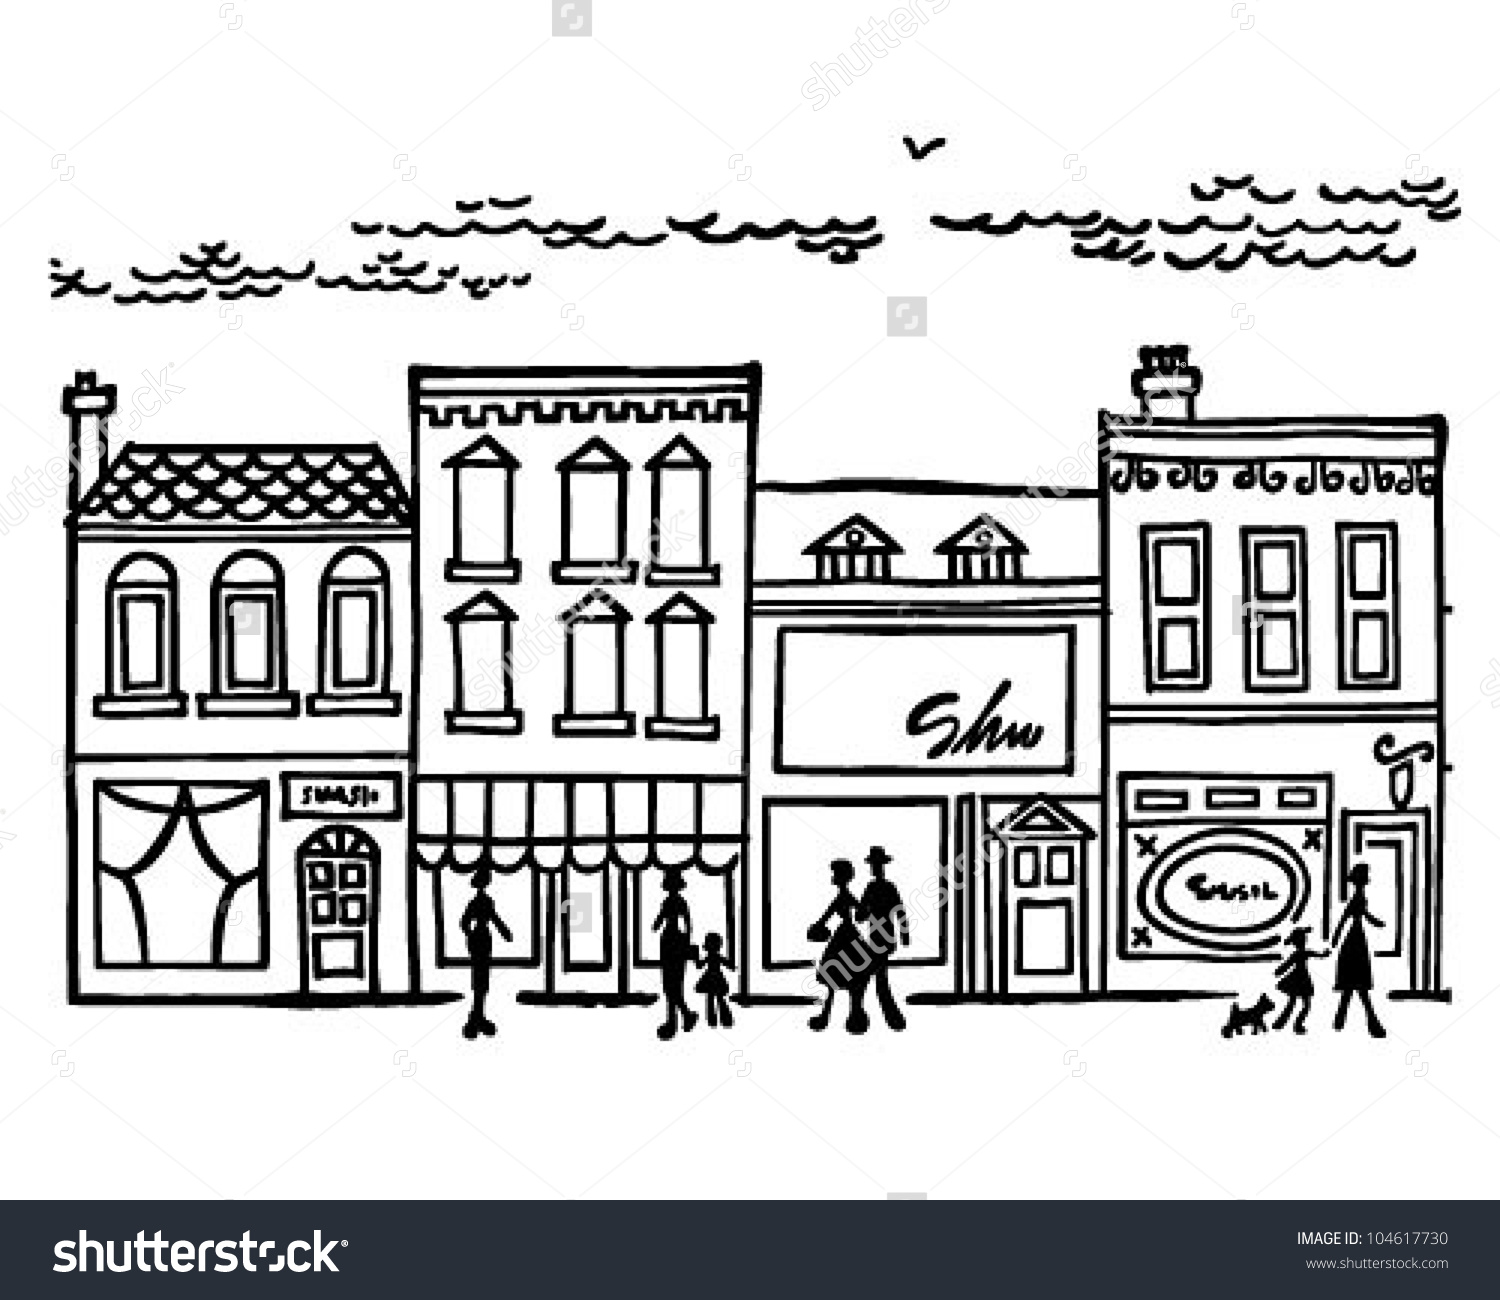 Main street clipart graphic black and white stock Small Town Main Street Retro Clipart Stock Vector 104617730 ... graphic black and white stock